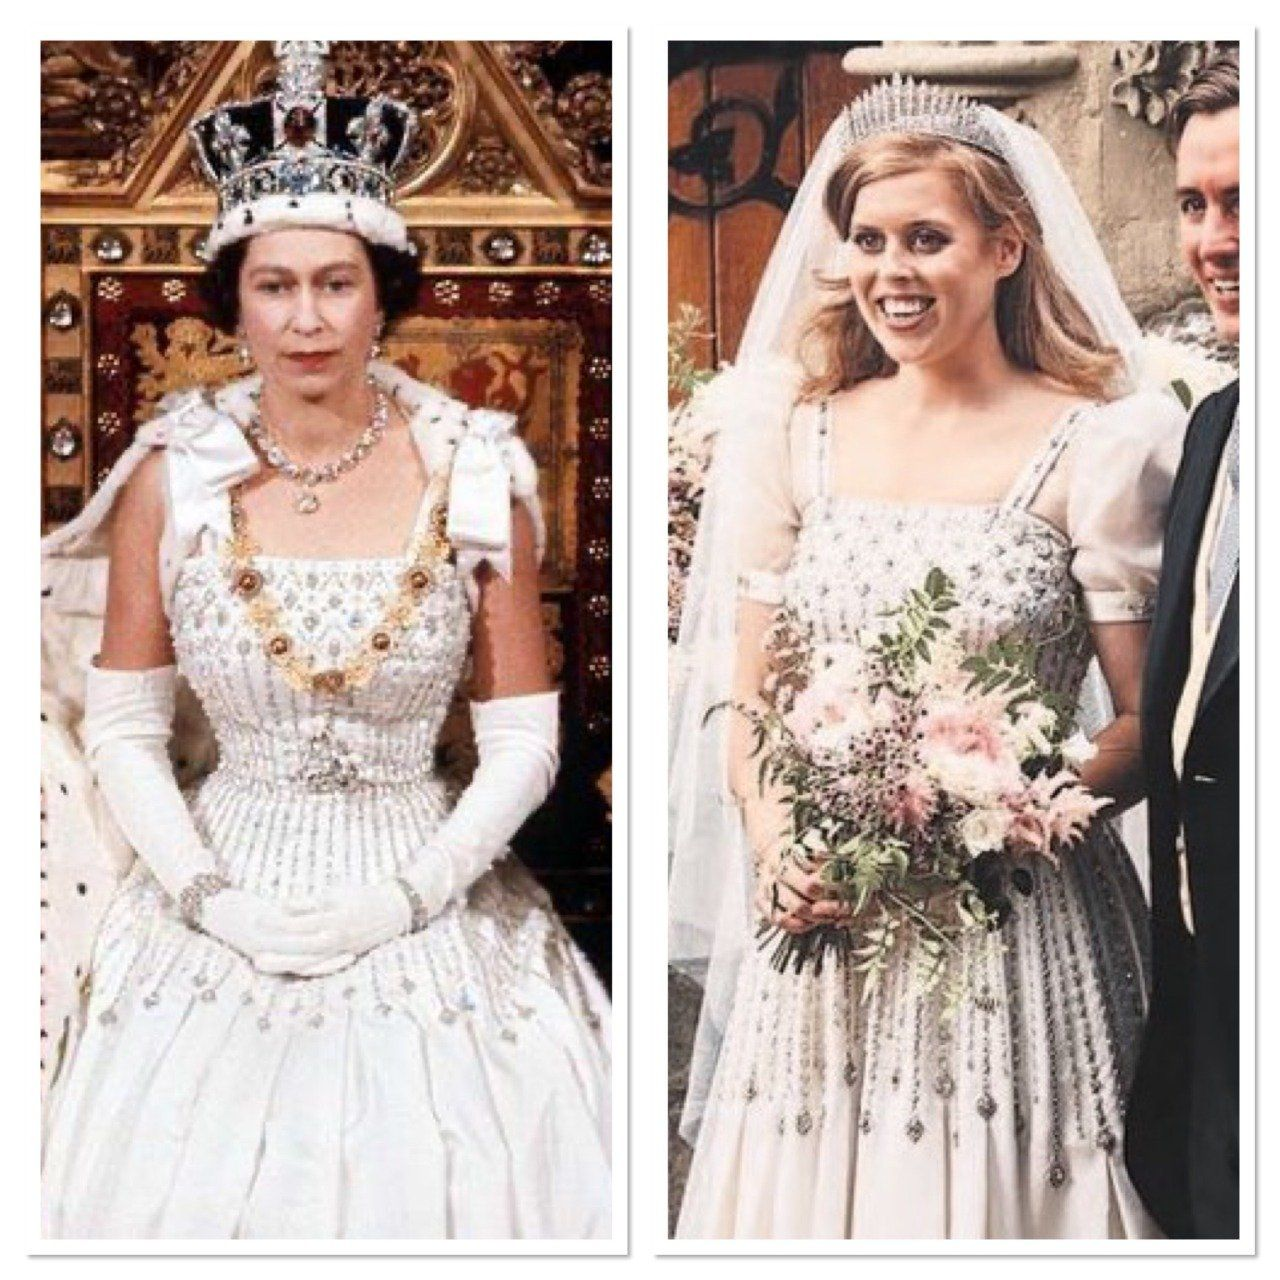 The wedding of Princess Beatrice. She wore a vintage dress